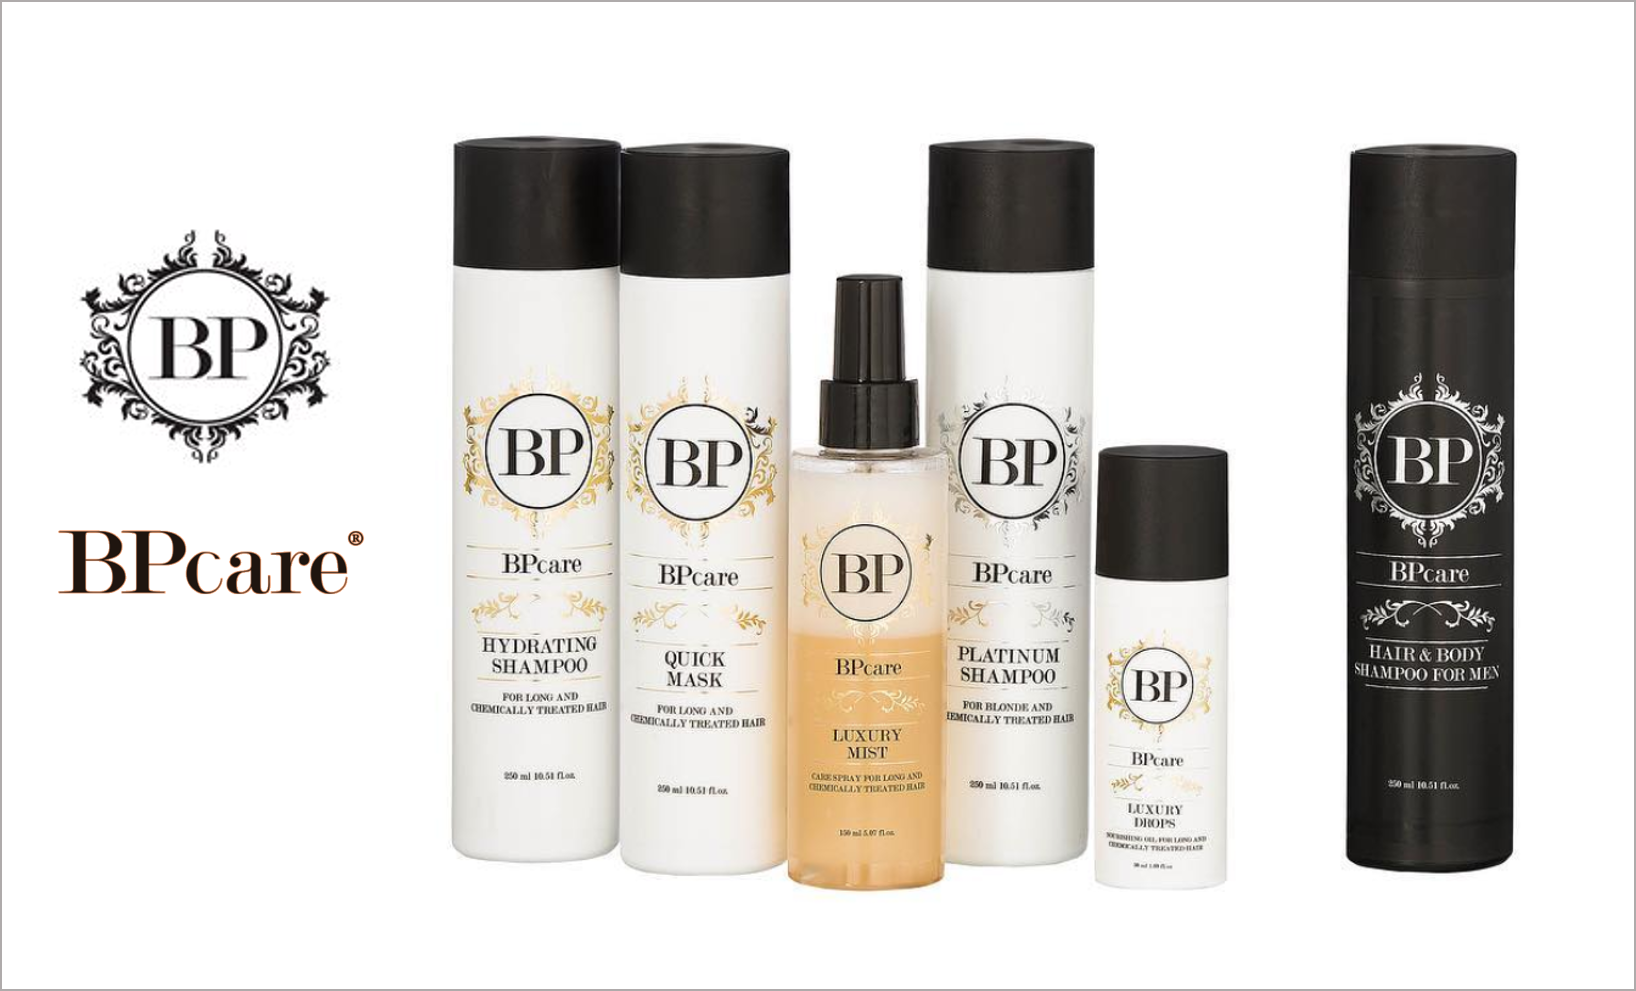 BPcare_haircare_products_-_banner